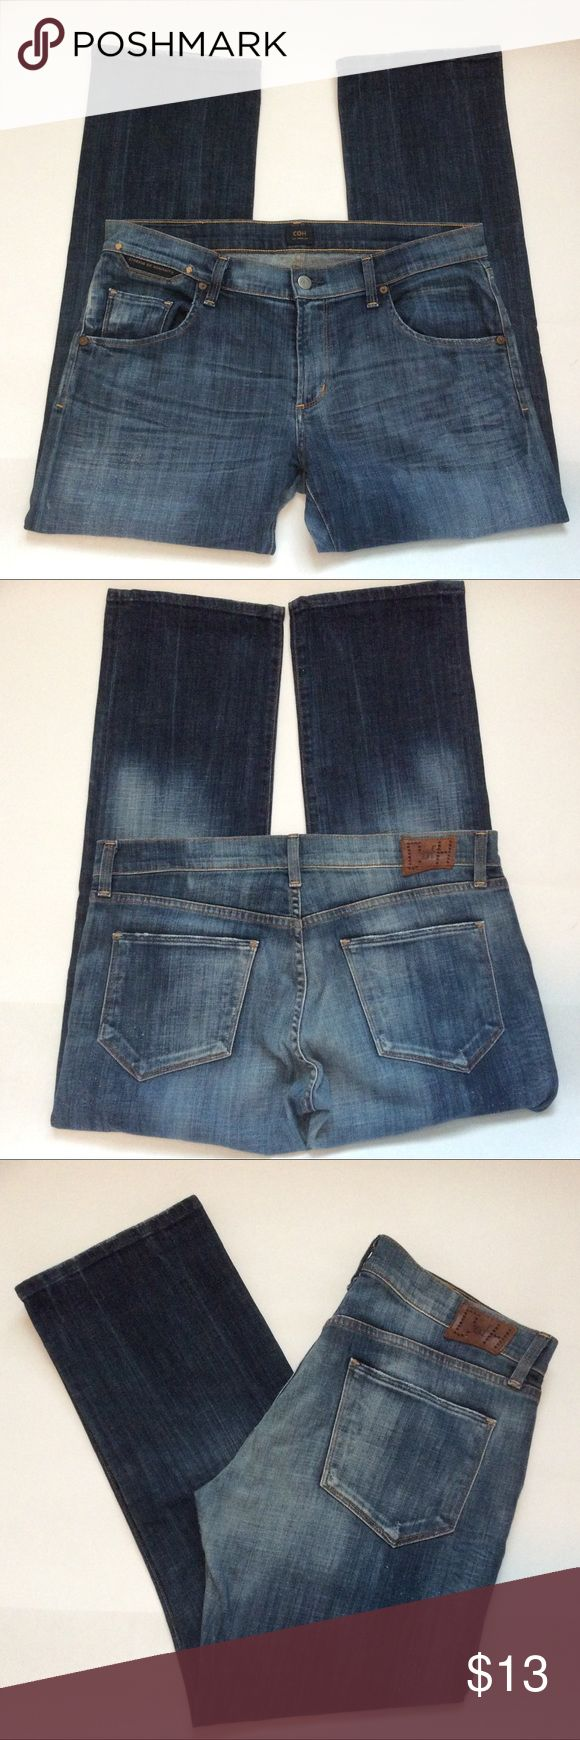 """Just In💕 COH Lived In Jeans Pre-loved. Soft and broken in. Priced accordingly. See photos for wear. Still life left in these cuties. Measured laying flat, across and down. 16.5""""W, 8.5""""Rise, 27""""L Citizens Of Humanity Jeans"""